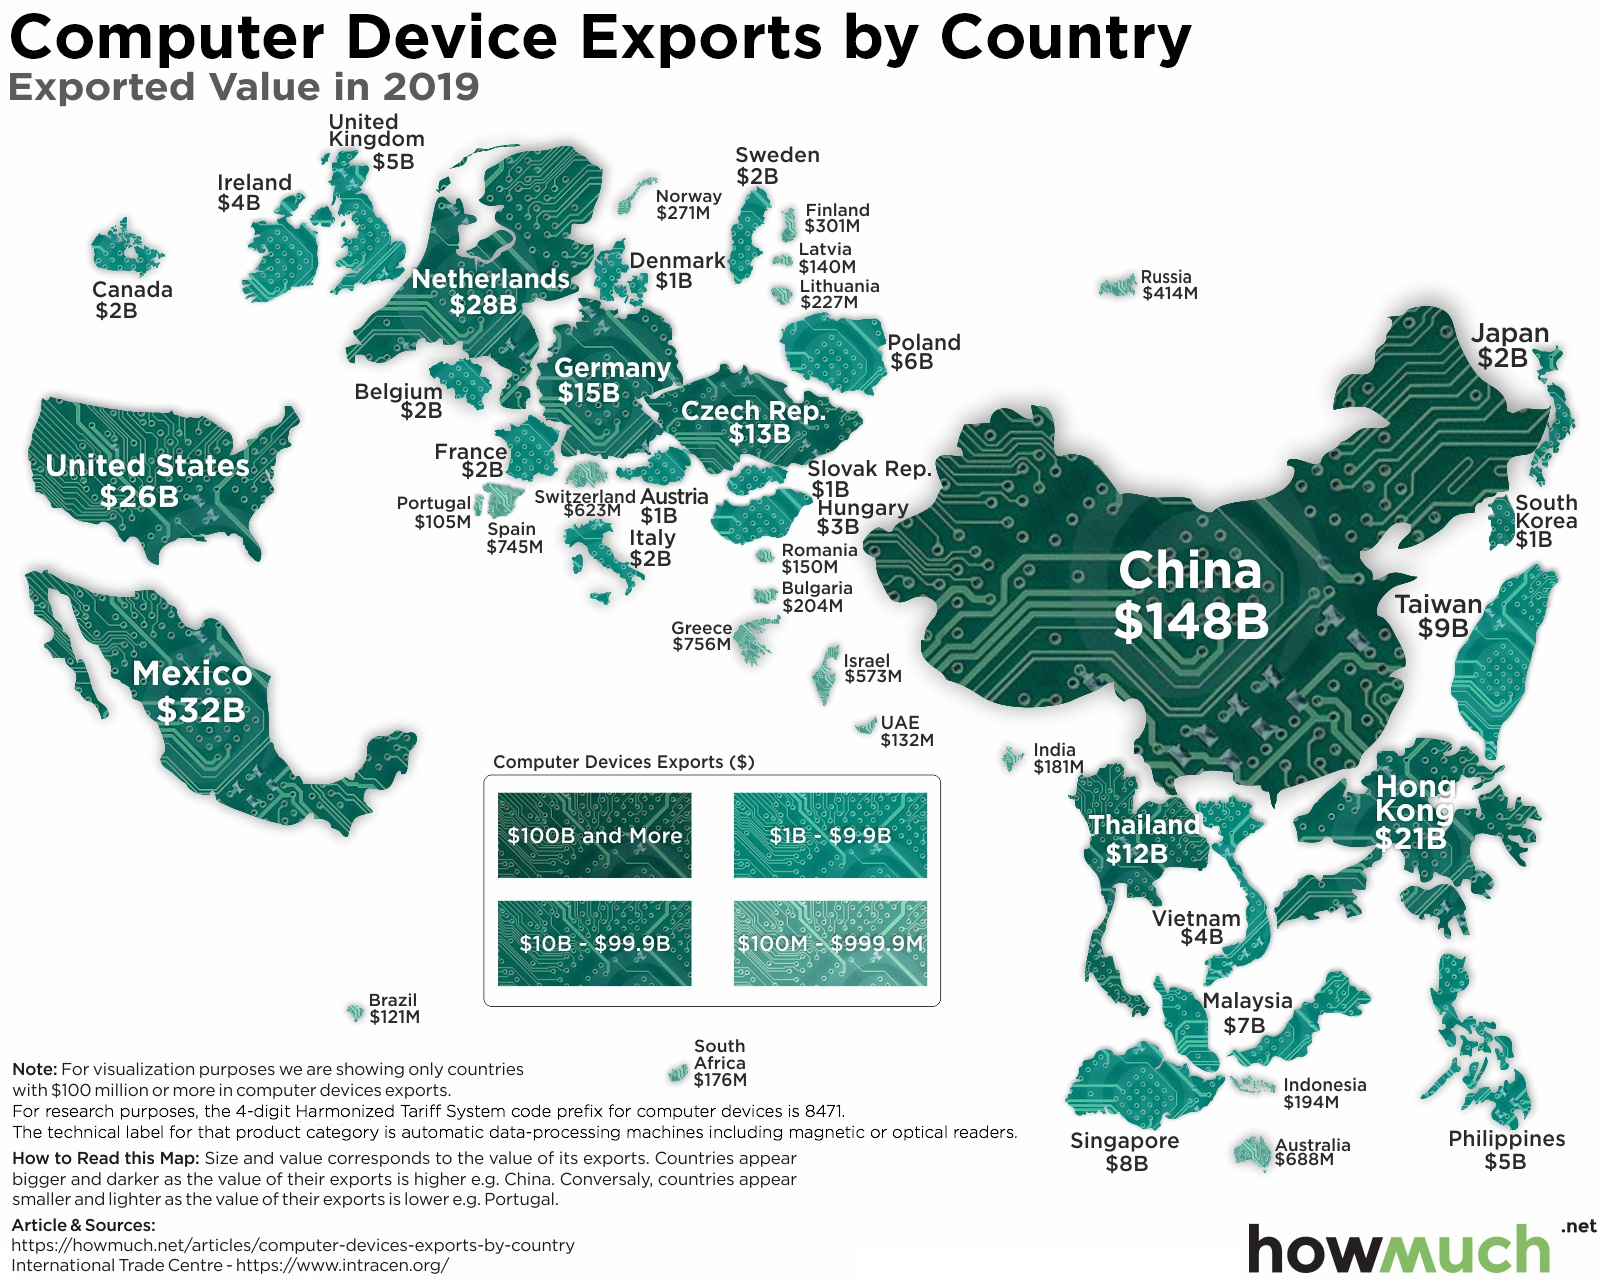 new_computer-devices-exports-by-country-copy-50e2